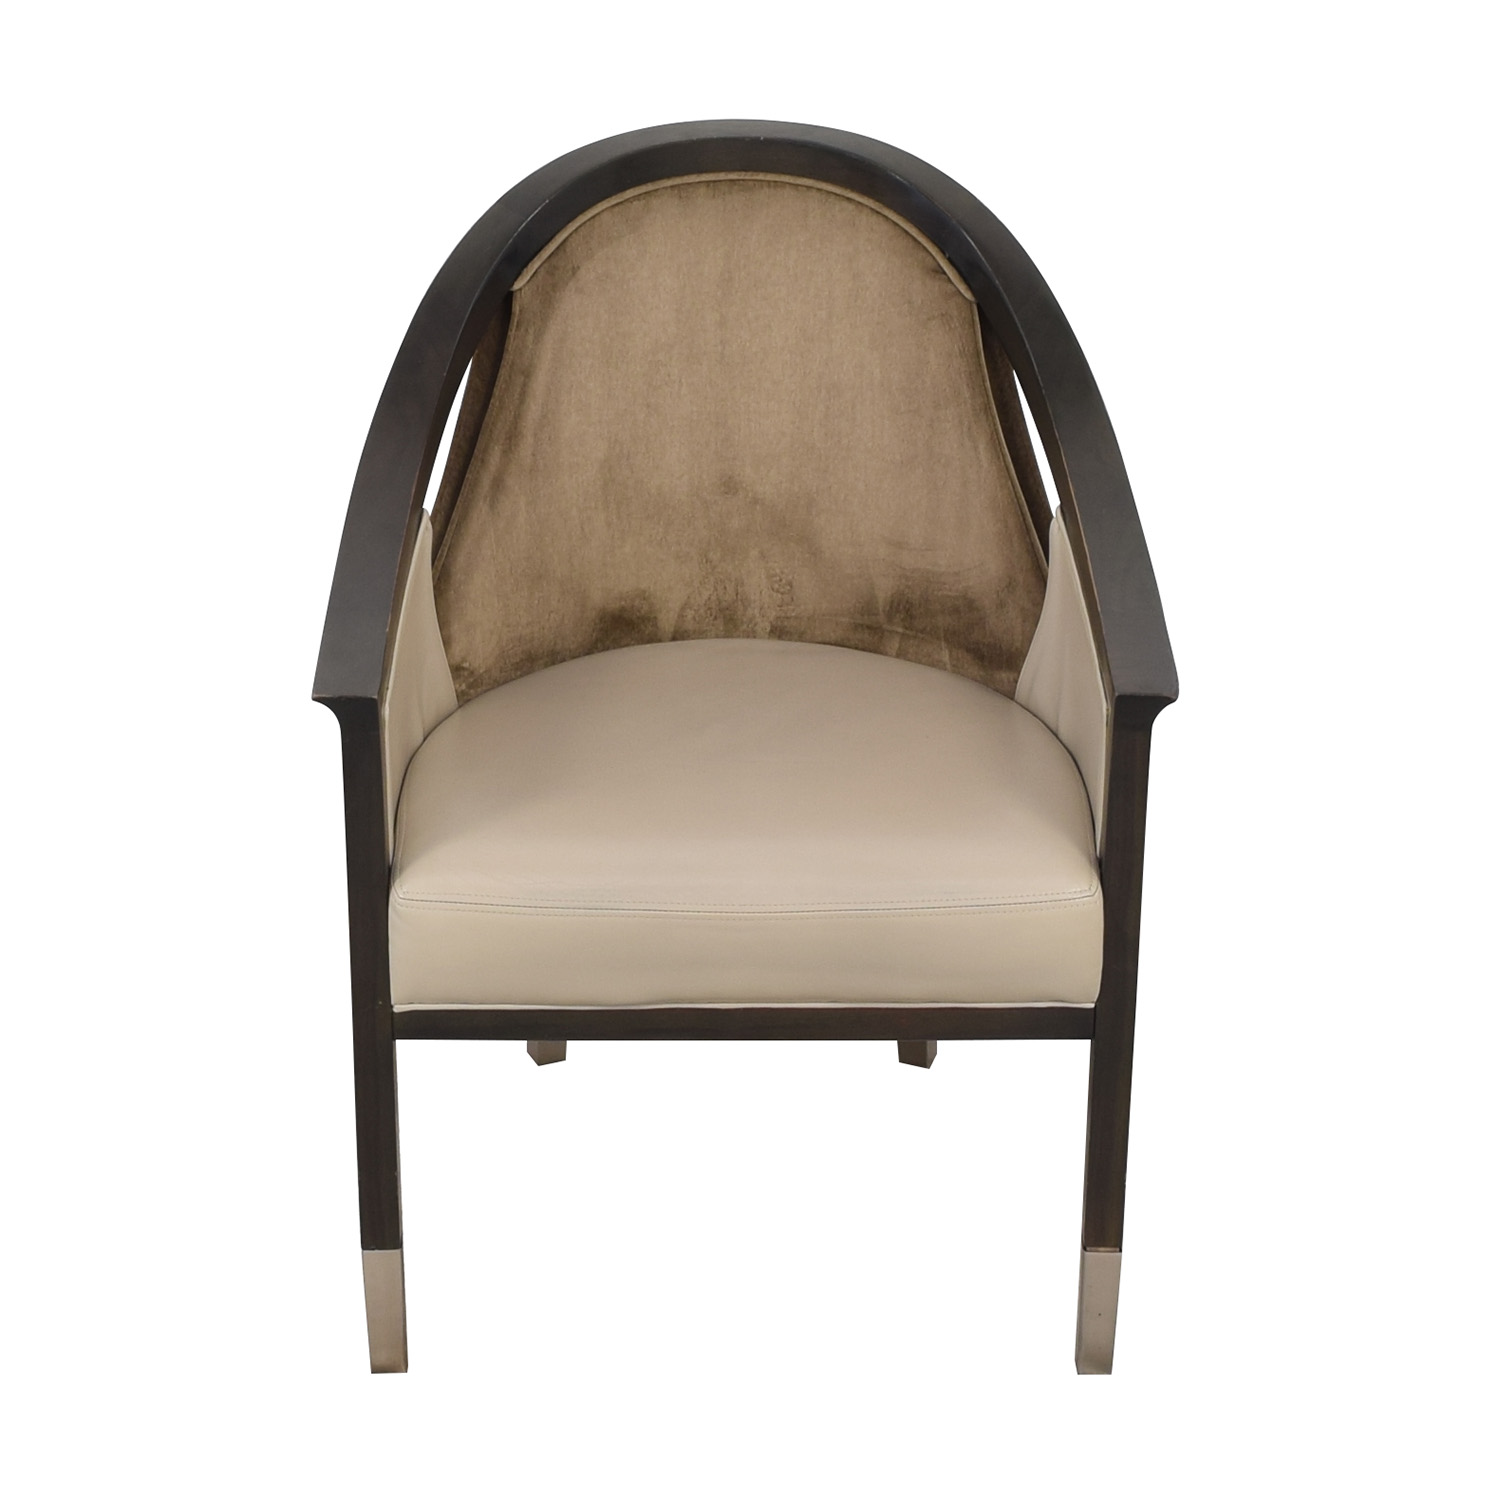 Allied Works Eleven Madison Park Dining Room Chair / Chairs